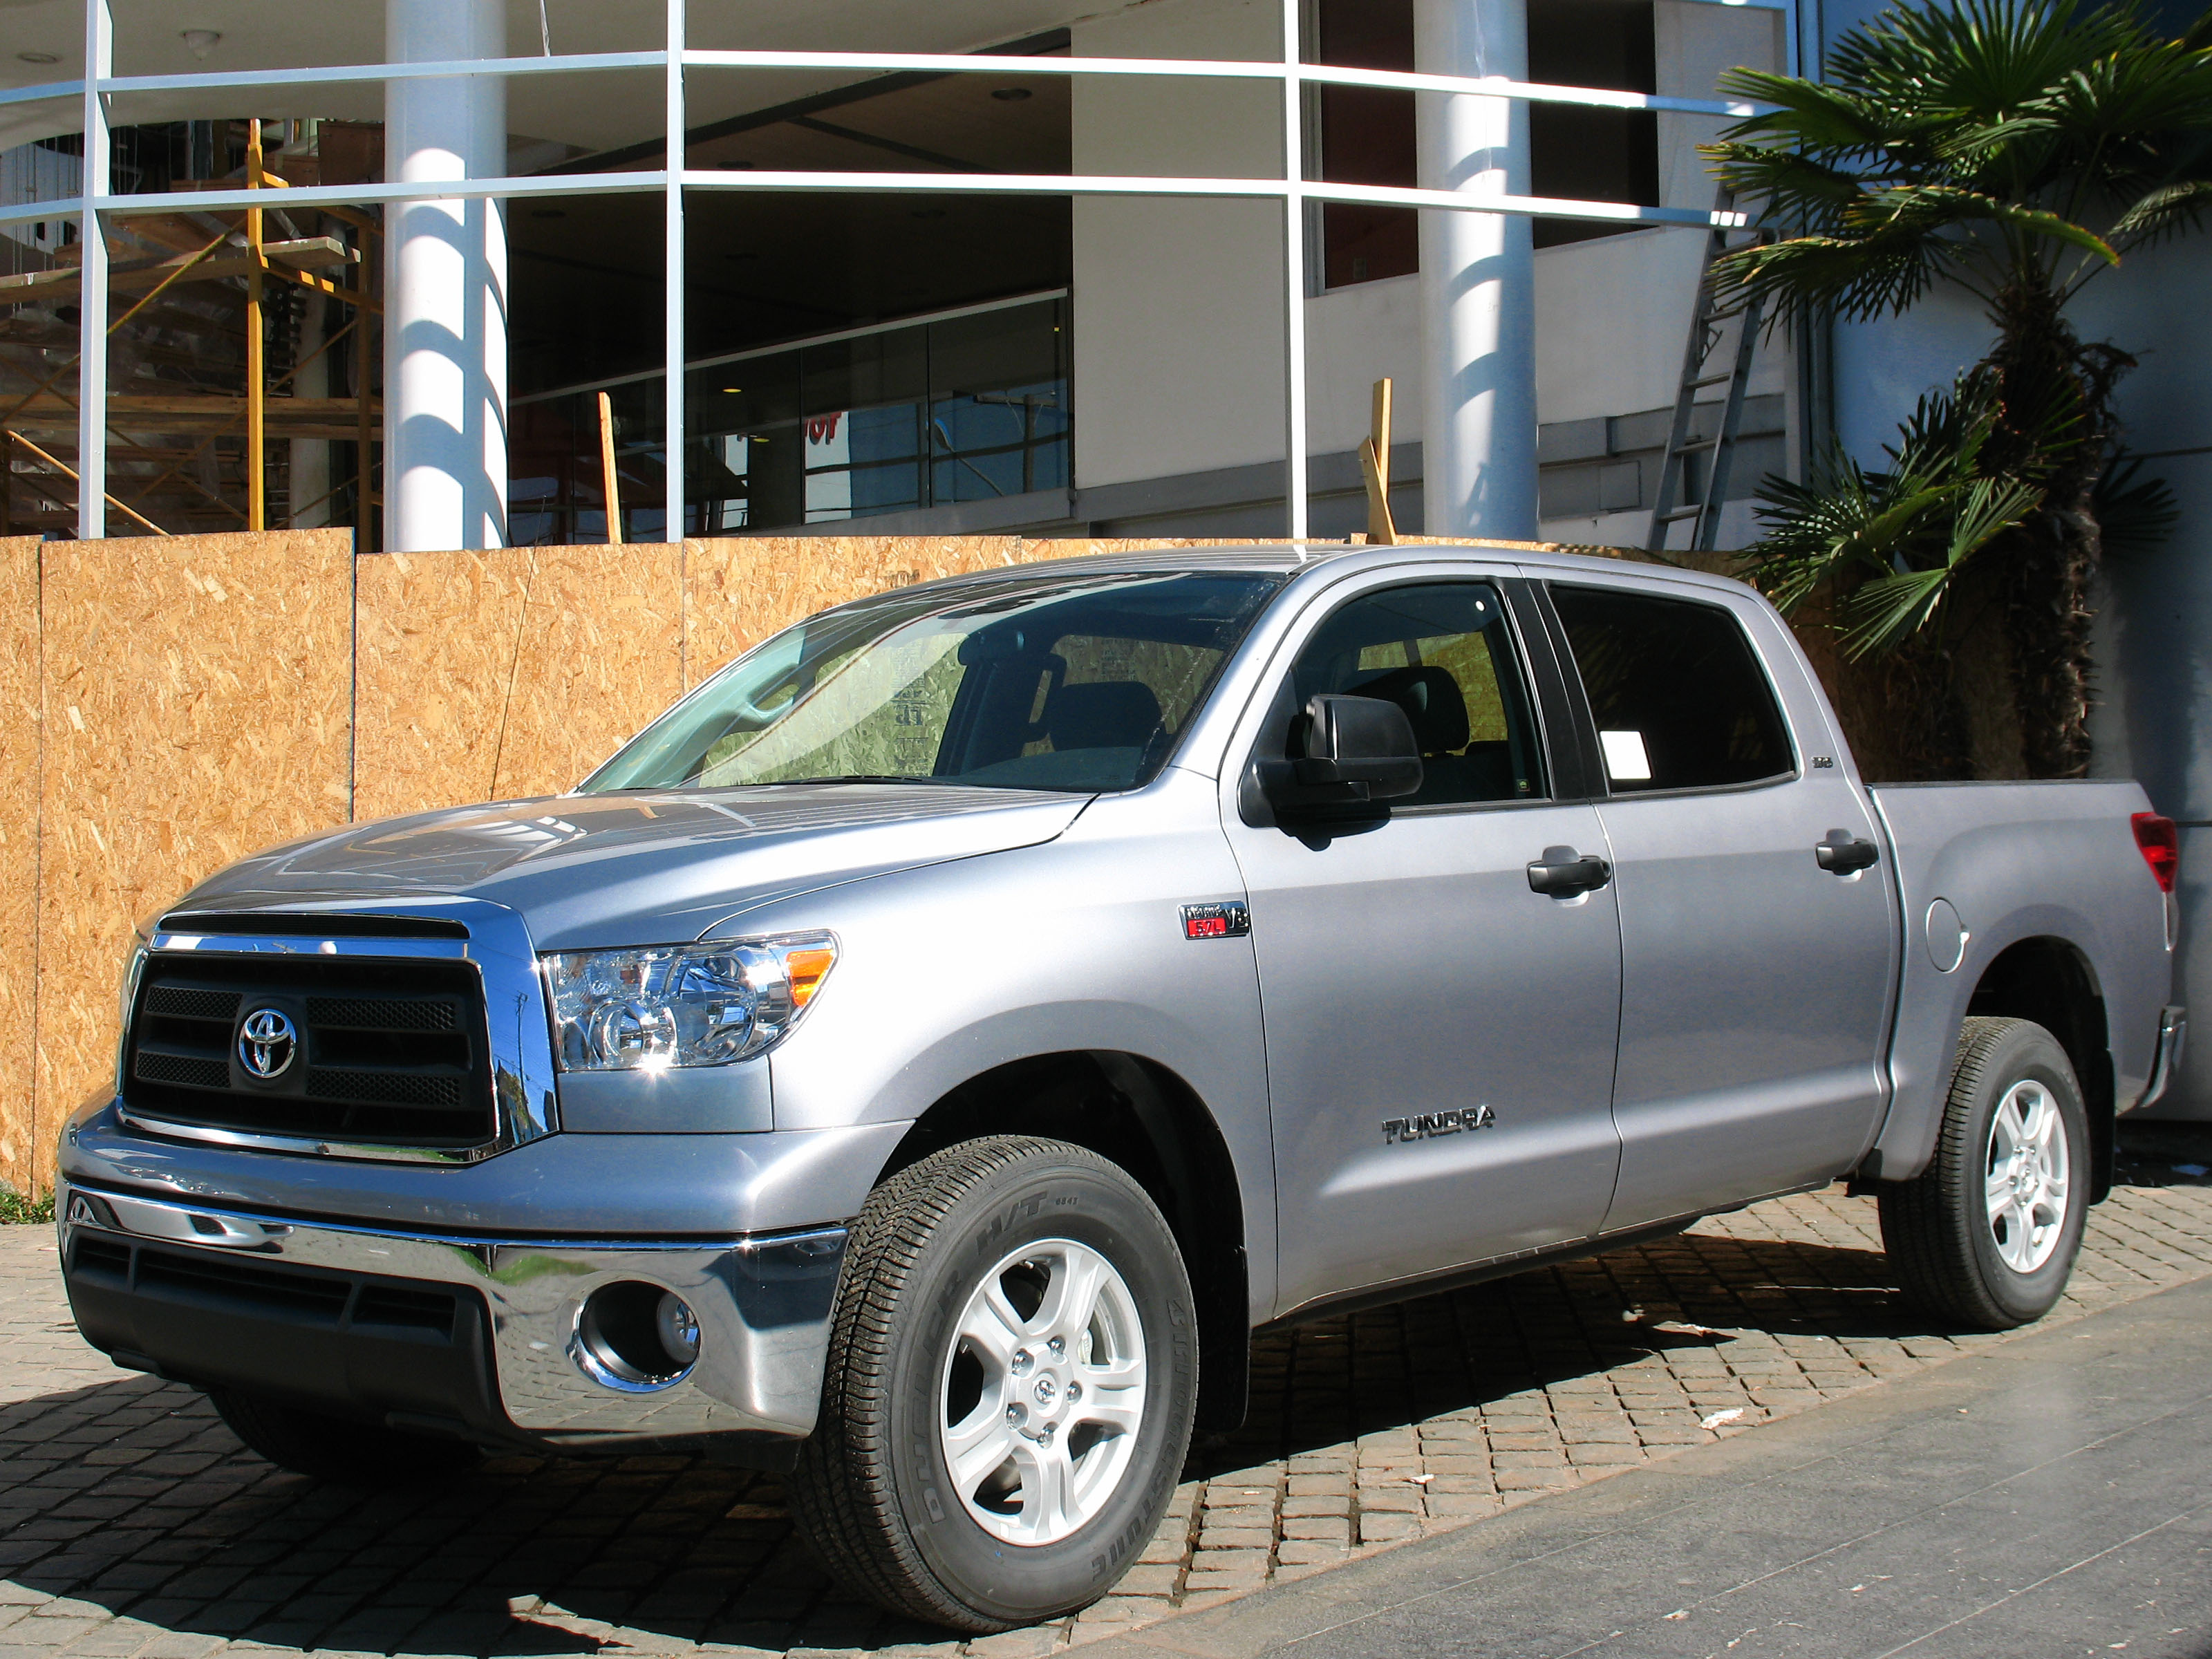 2010 Toyota Tundra Crewmax Bed Size The Amazing 2018 Measurements Forum Source File Sr5 5 7l 14117774535